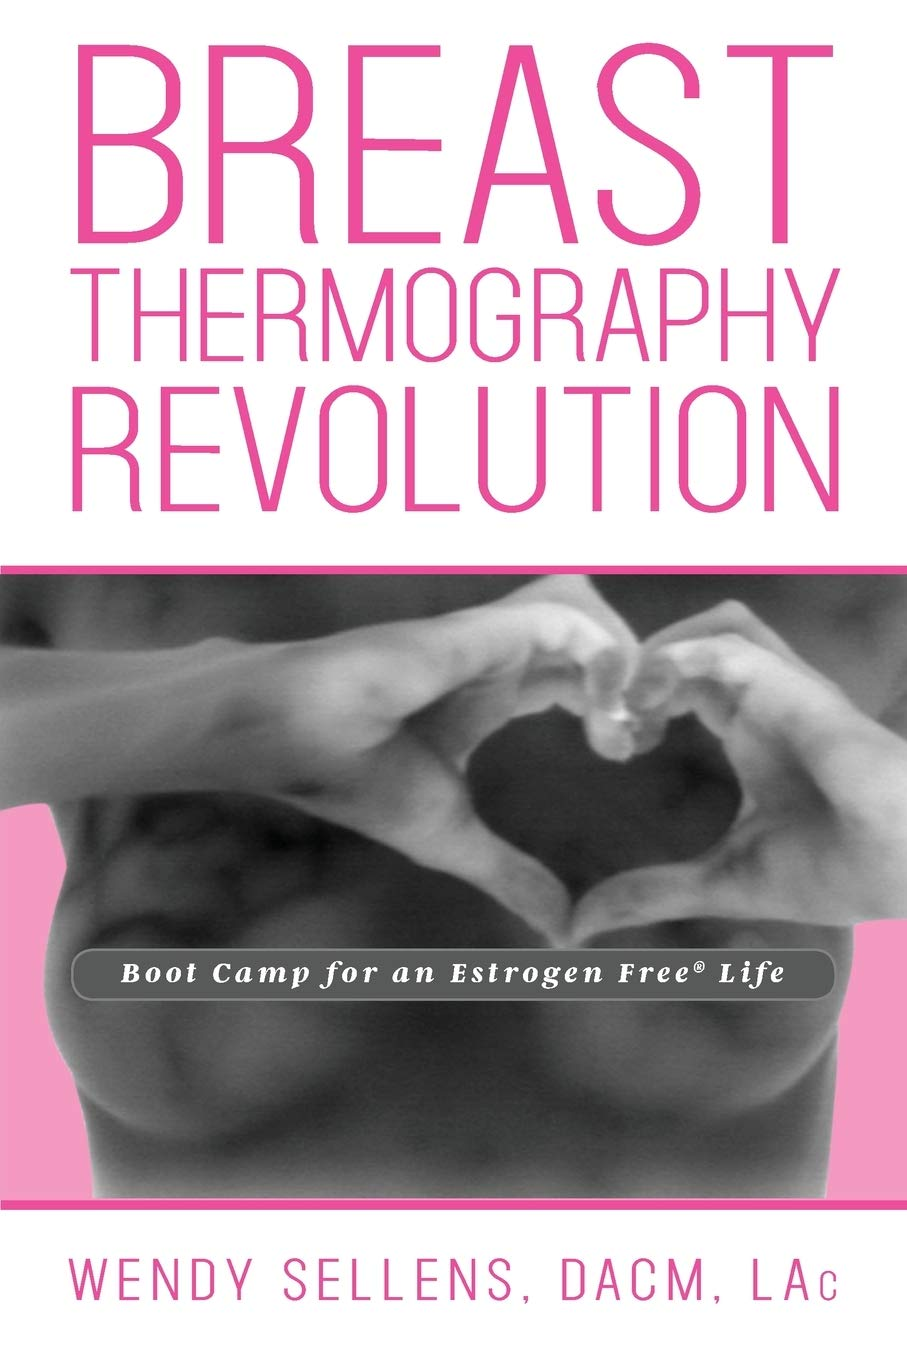 The Breast Thermography Revolution: Bootcamp for an Estrogen Free Life